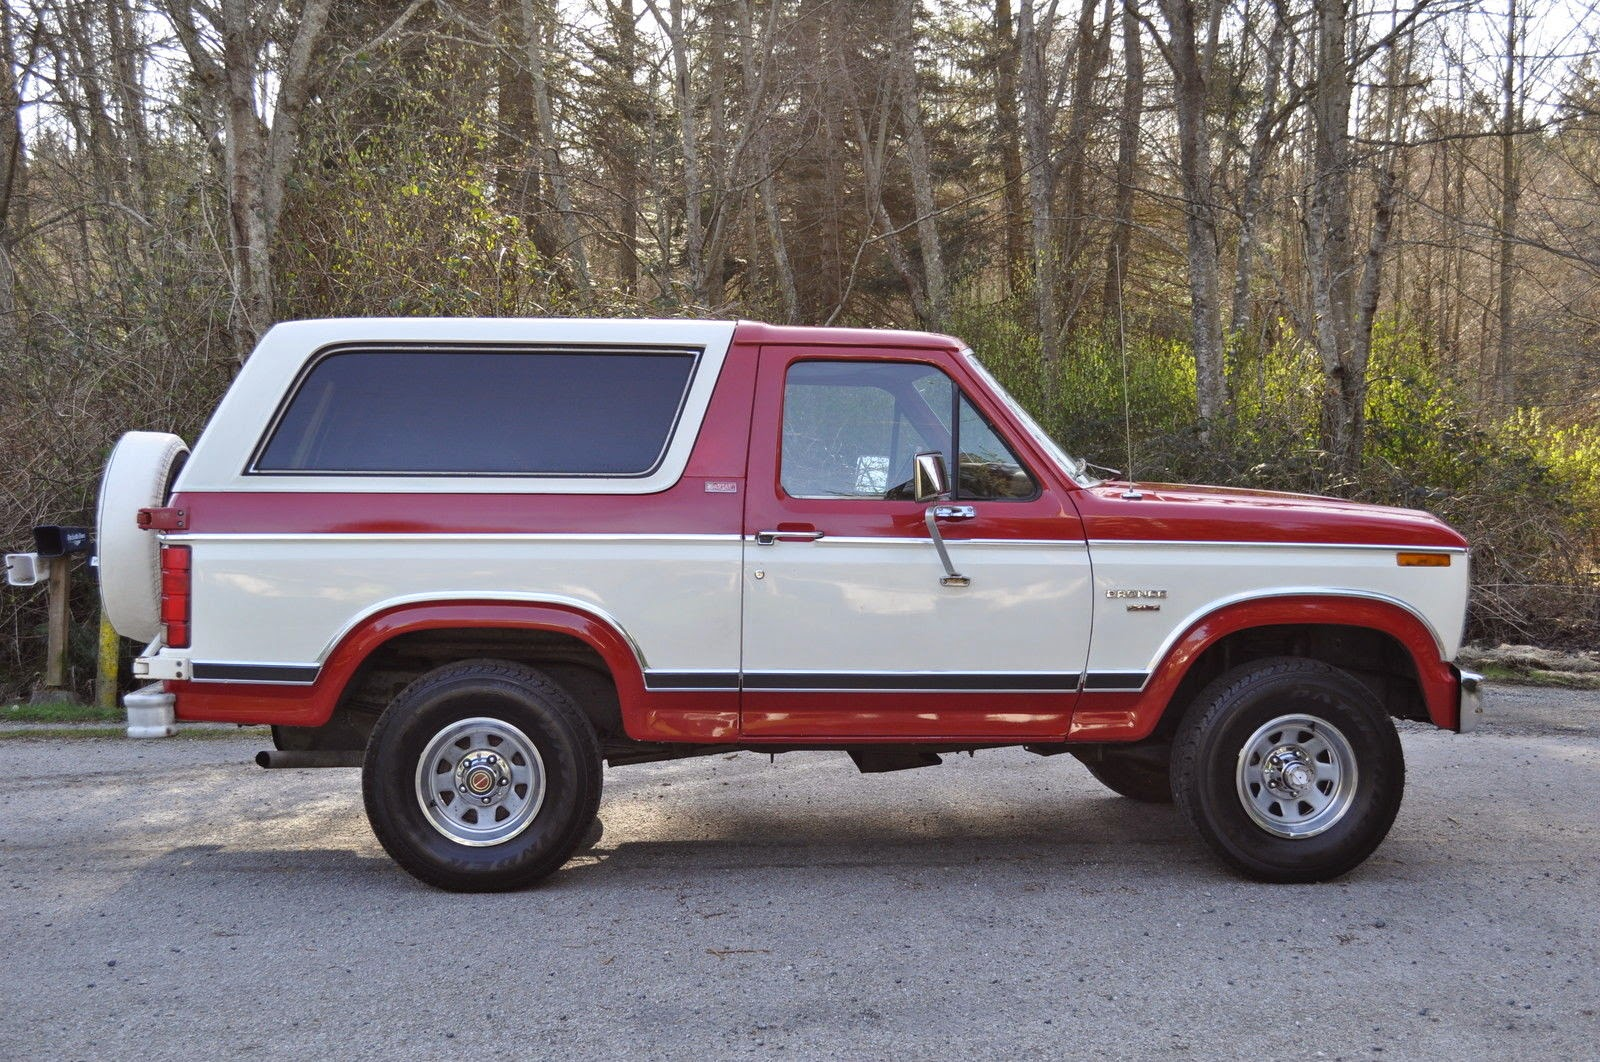 All American Classic Cars 1982 Ford Bronco Xlt Lariat 4x4 2 Door Suv